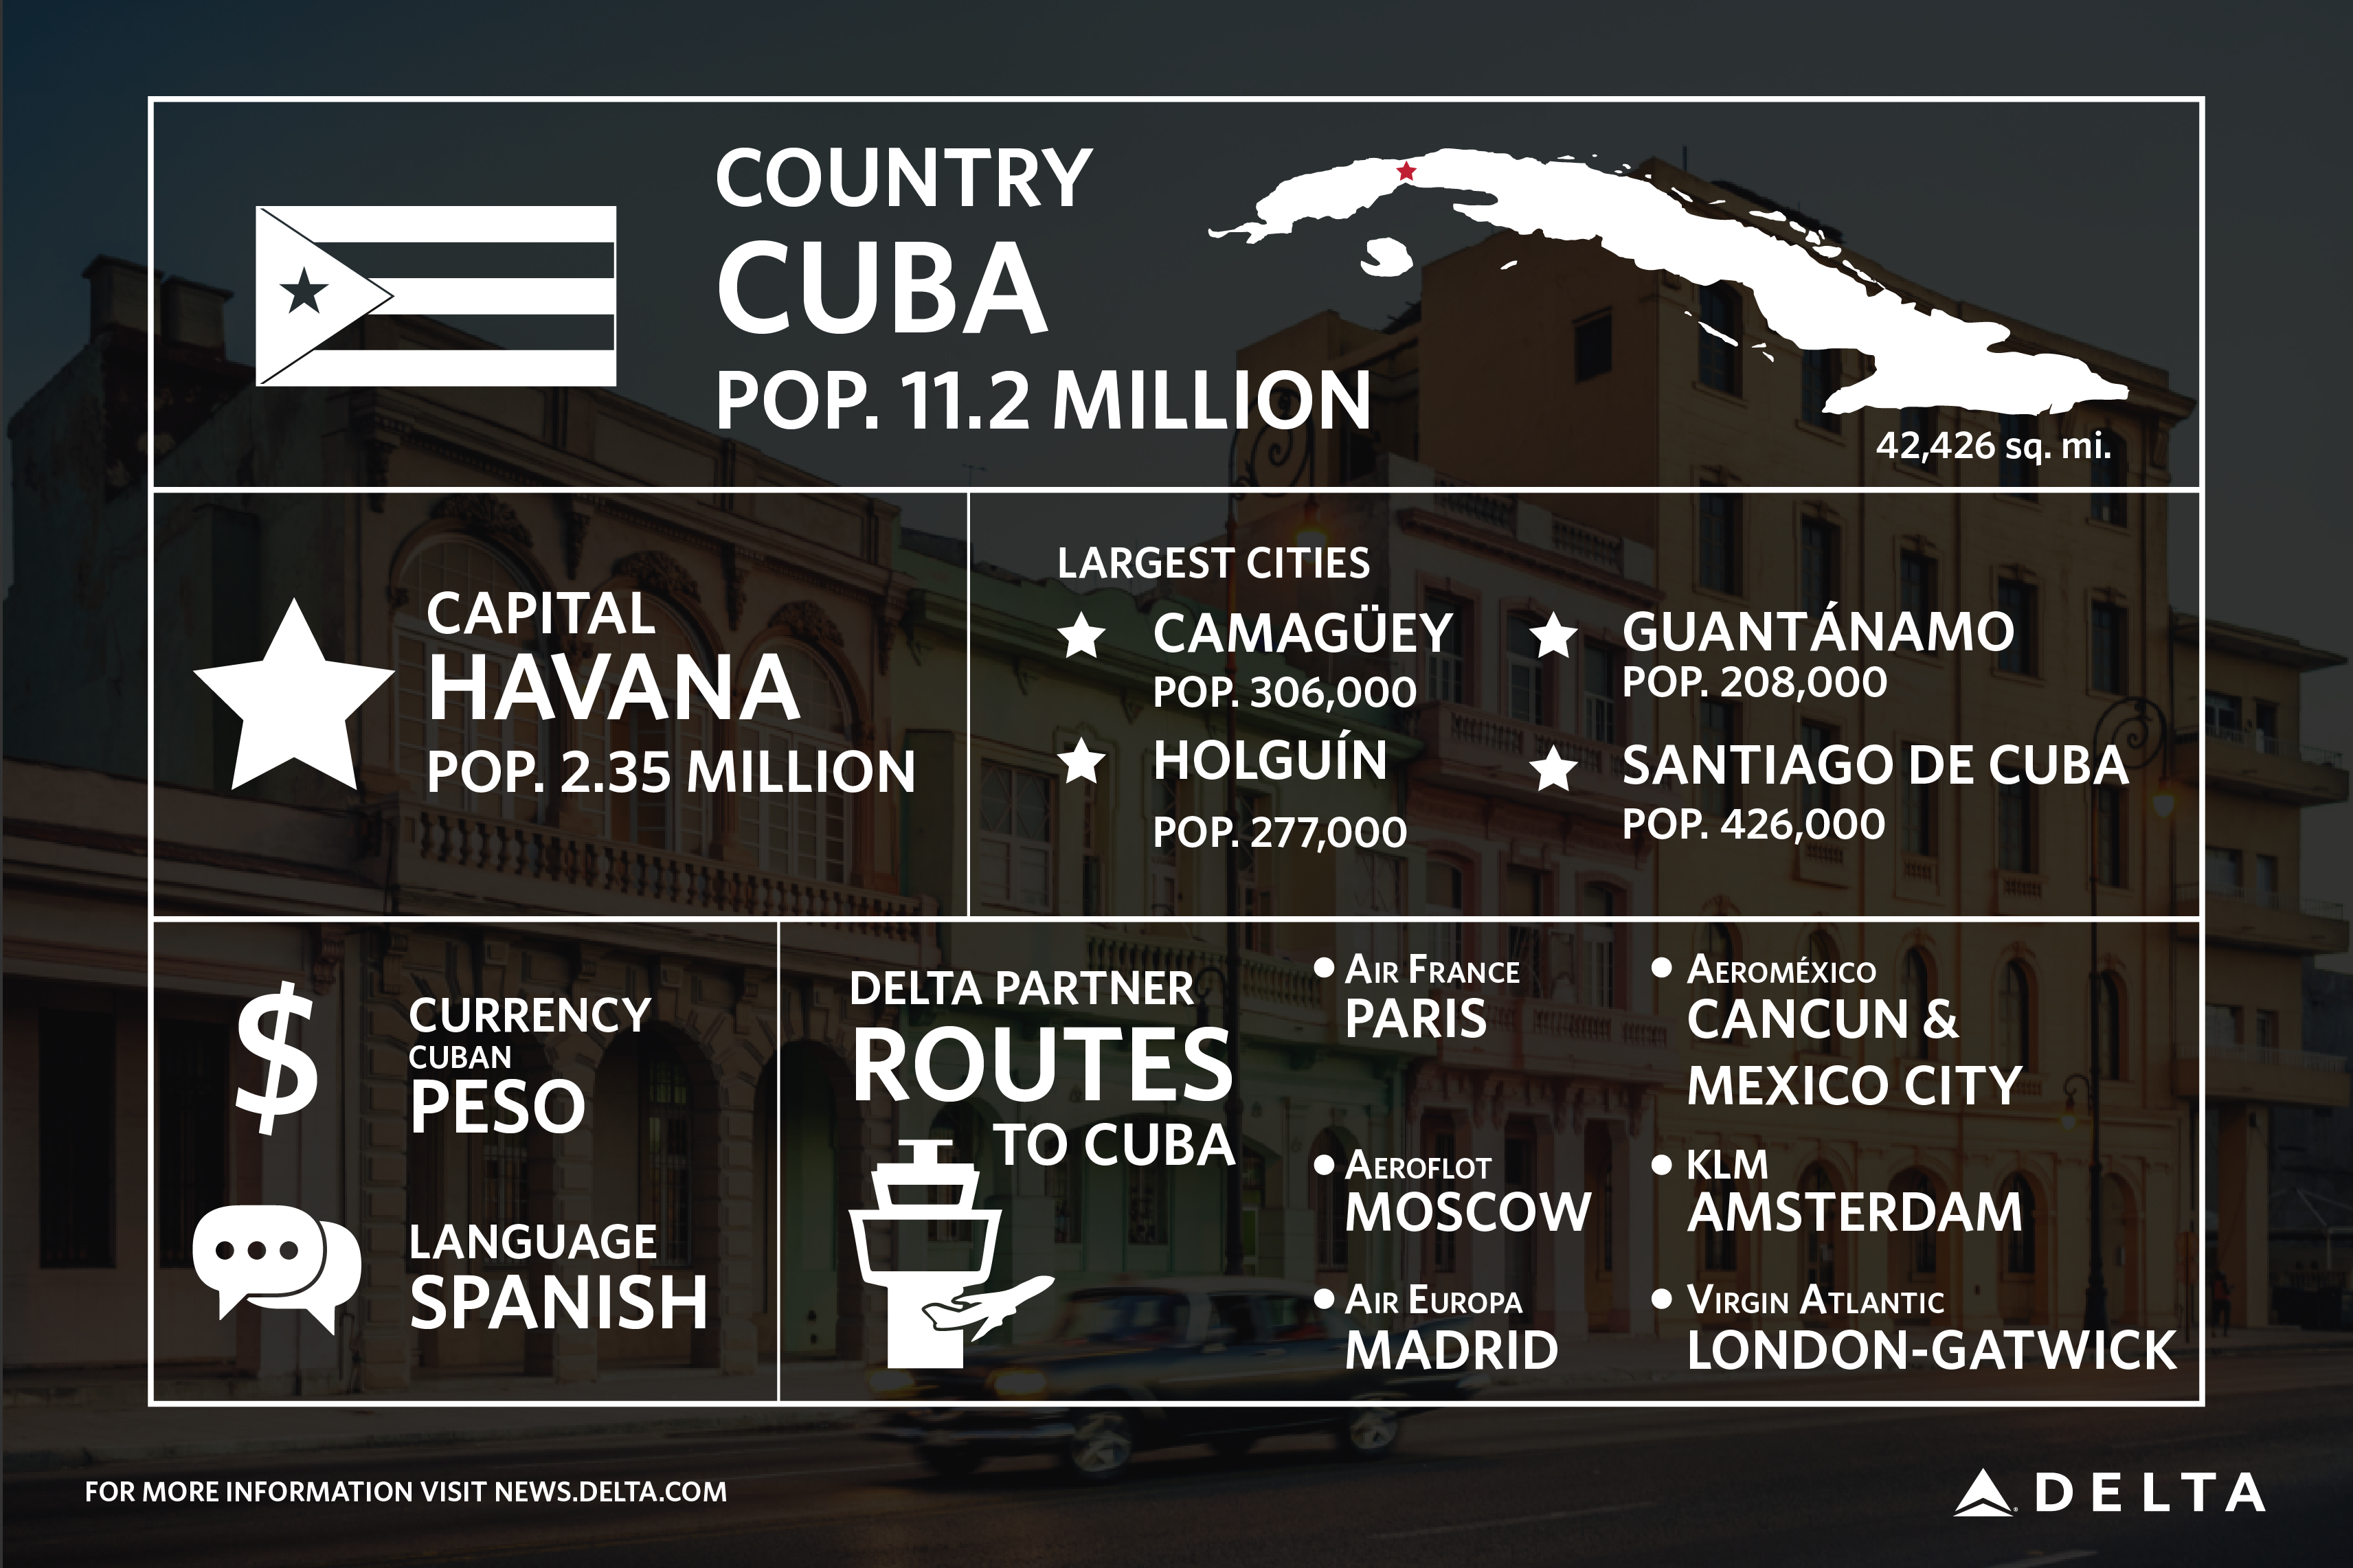 Cuba by the numbers